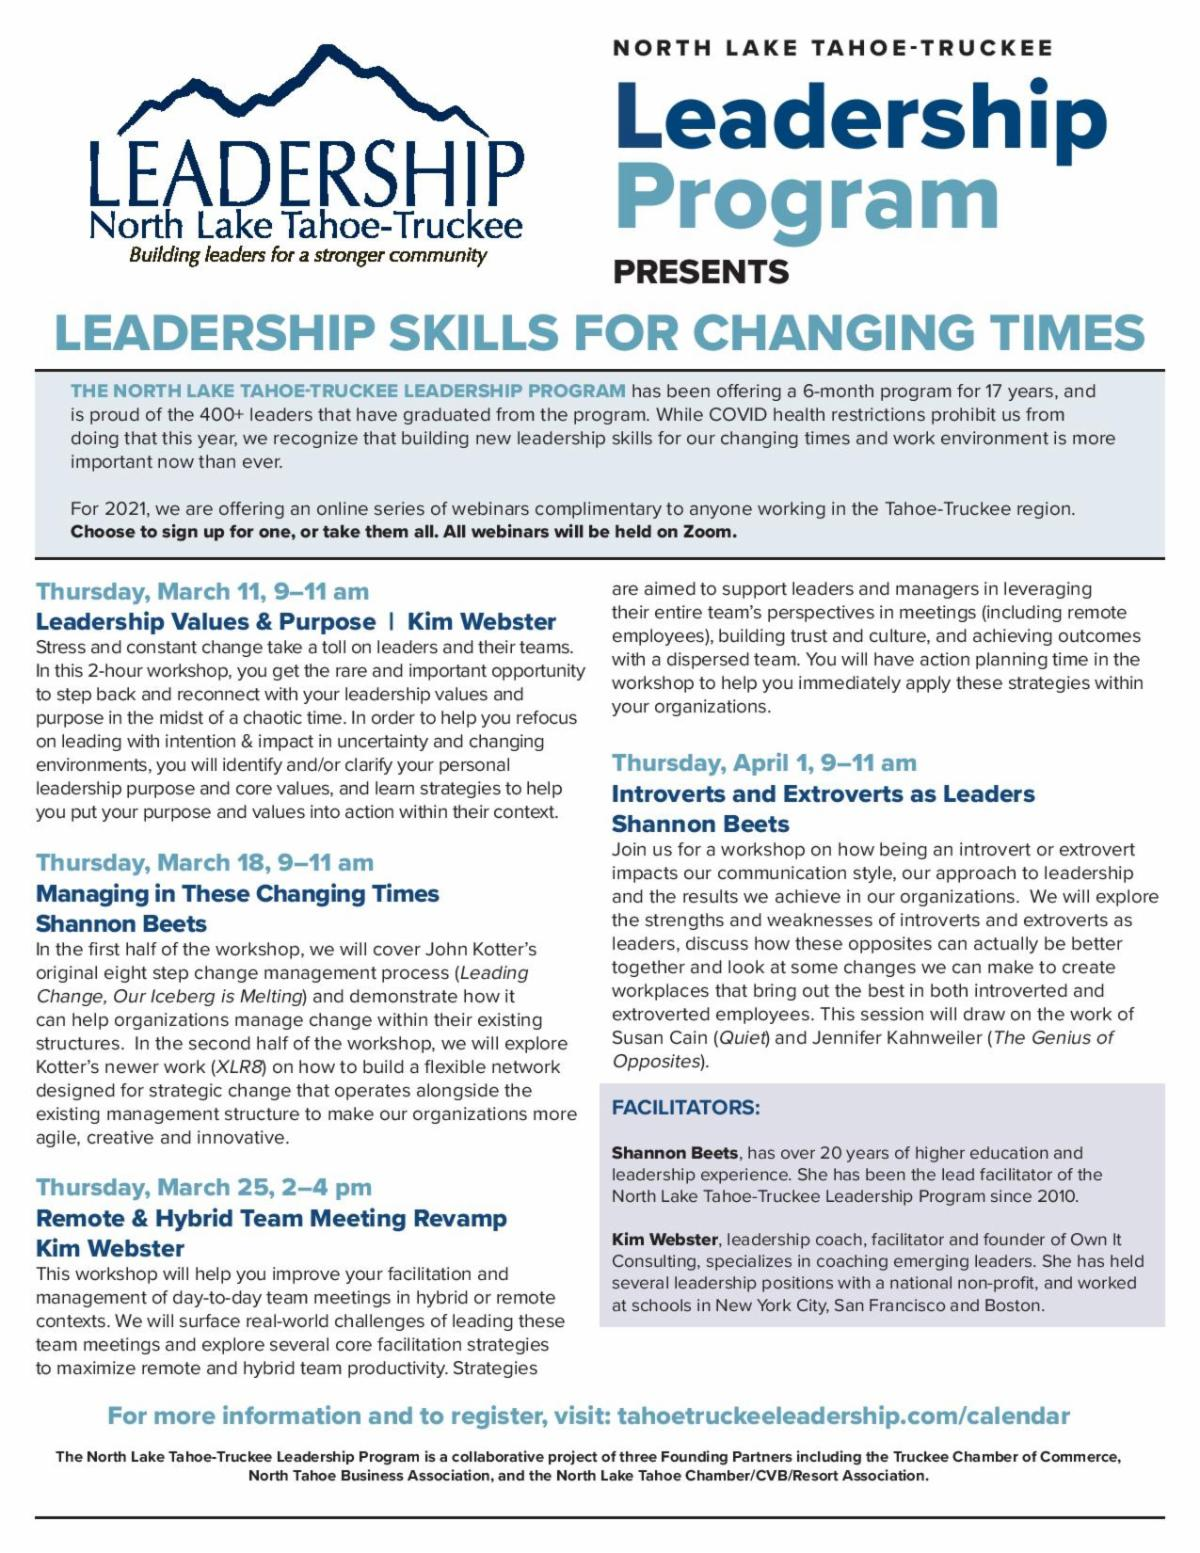 Leadership Skills for Changing Times